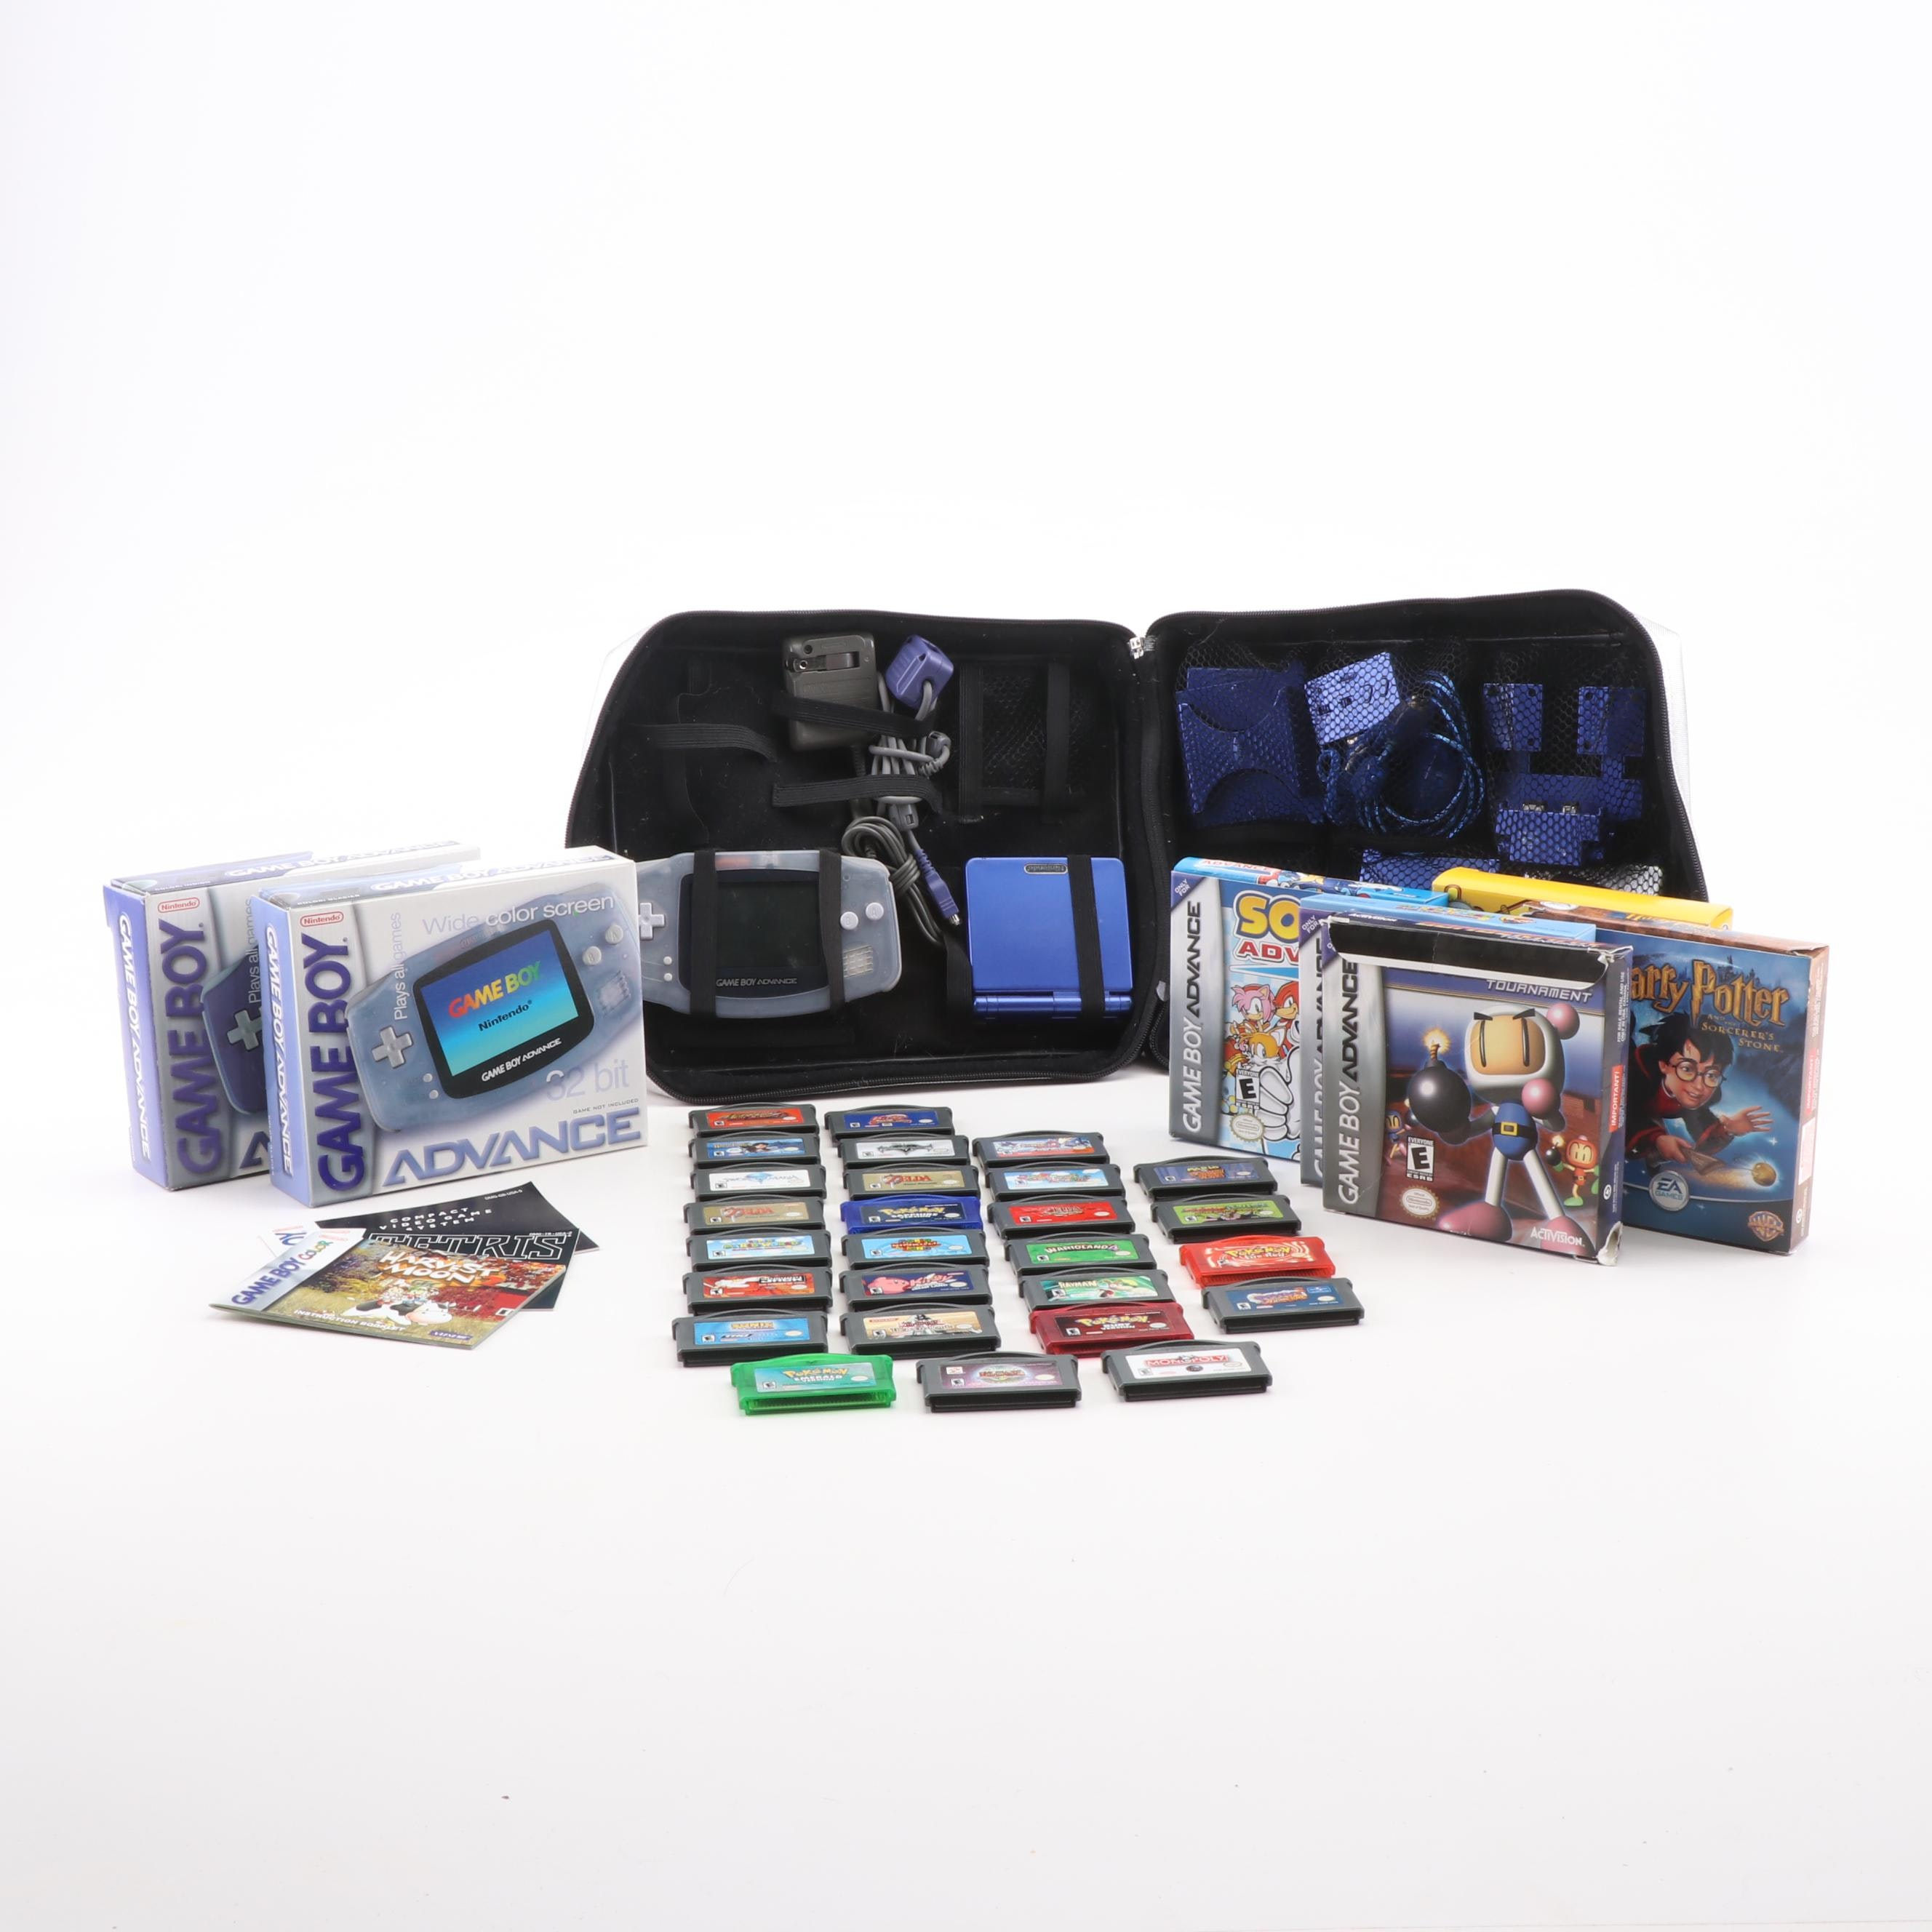 Nintendo Game Boy Advance Consoles with Games and Accessories